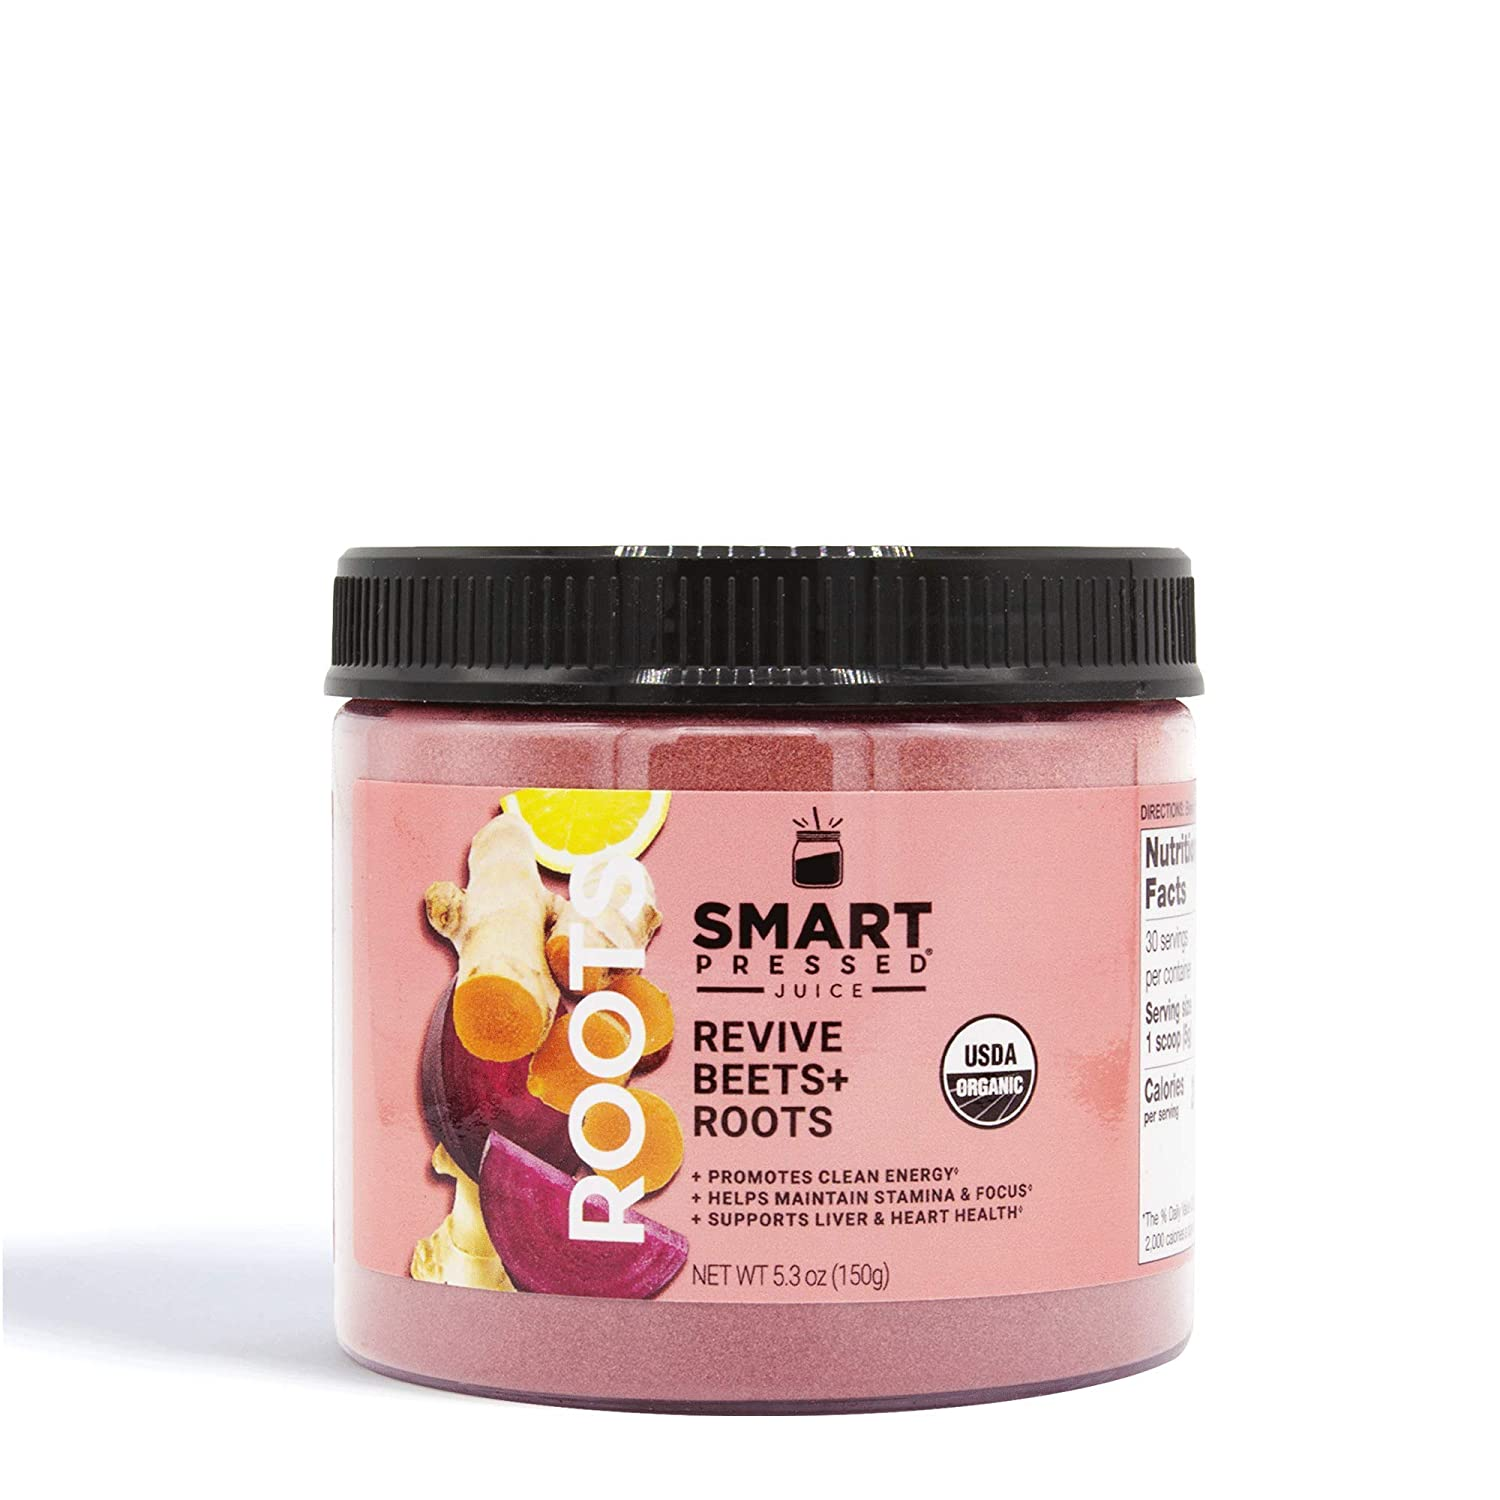 Mail order cheap Smart Cheap bargain Pressed Juice Revive Beets S Roots Healthy Pre-Workout